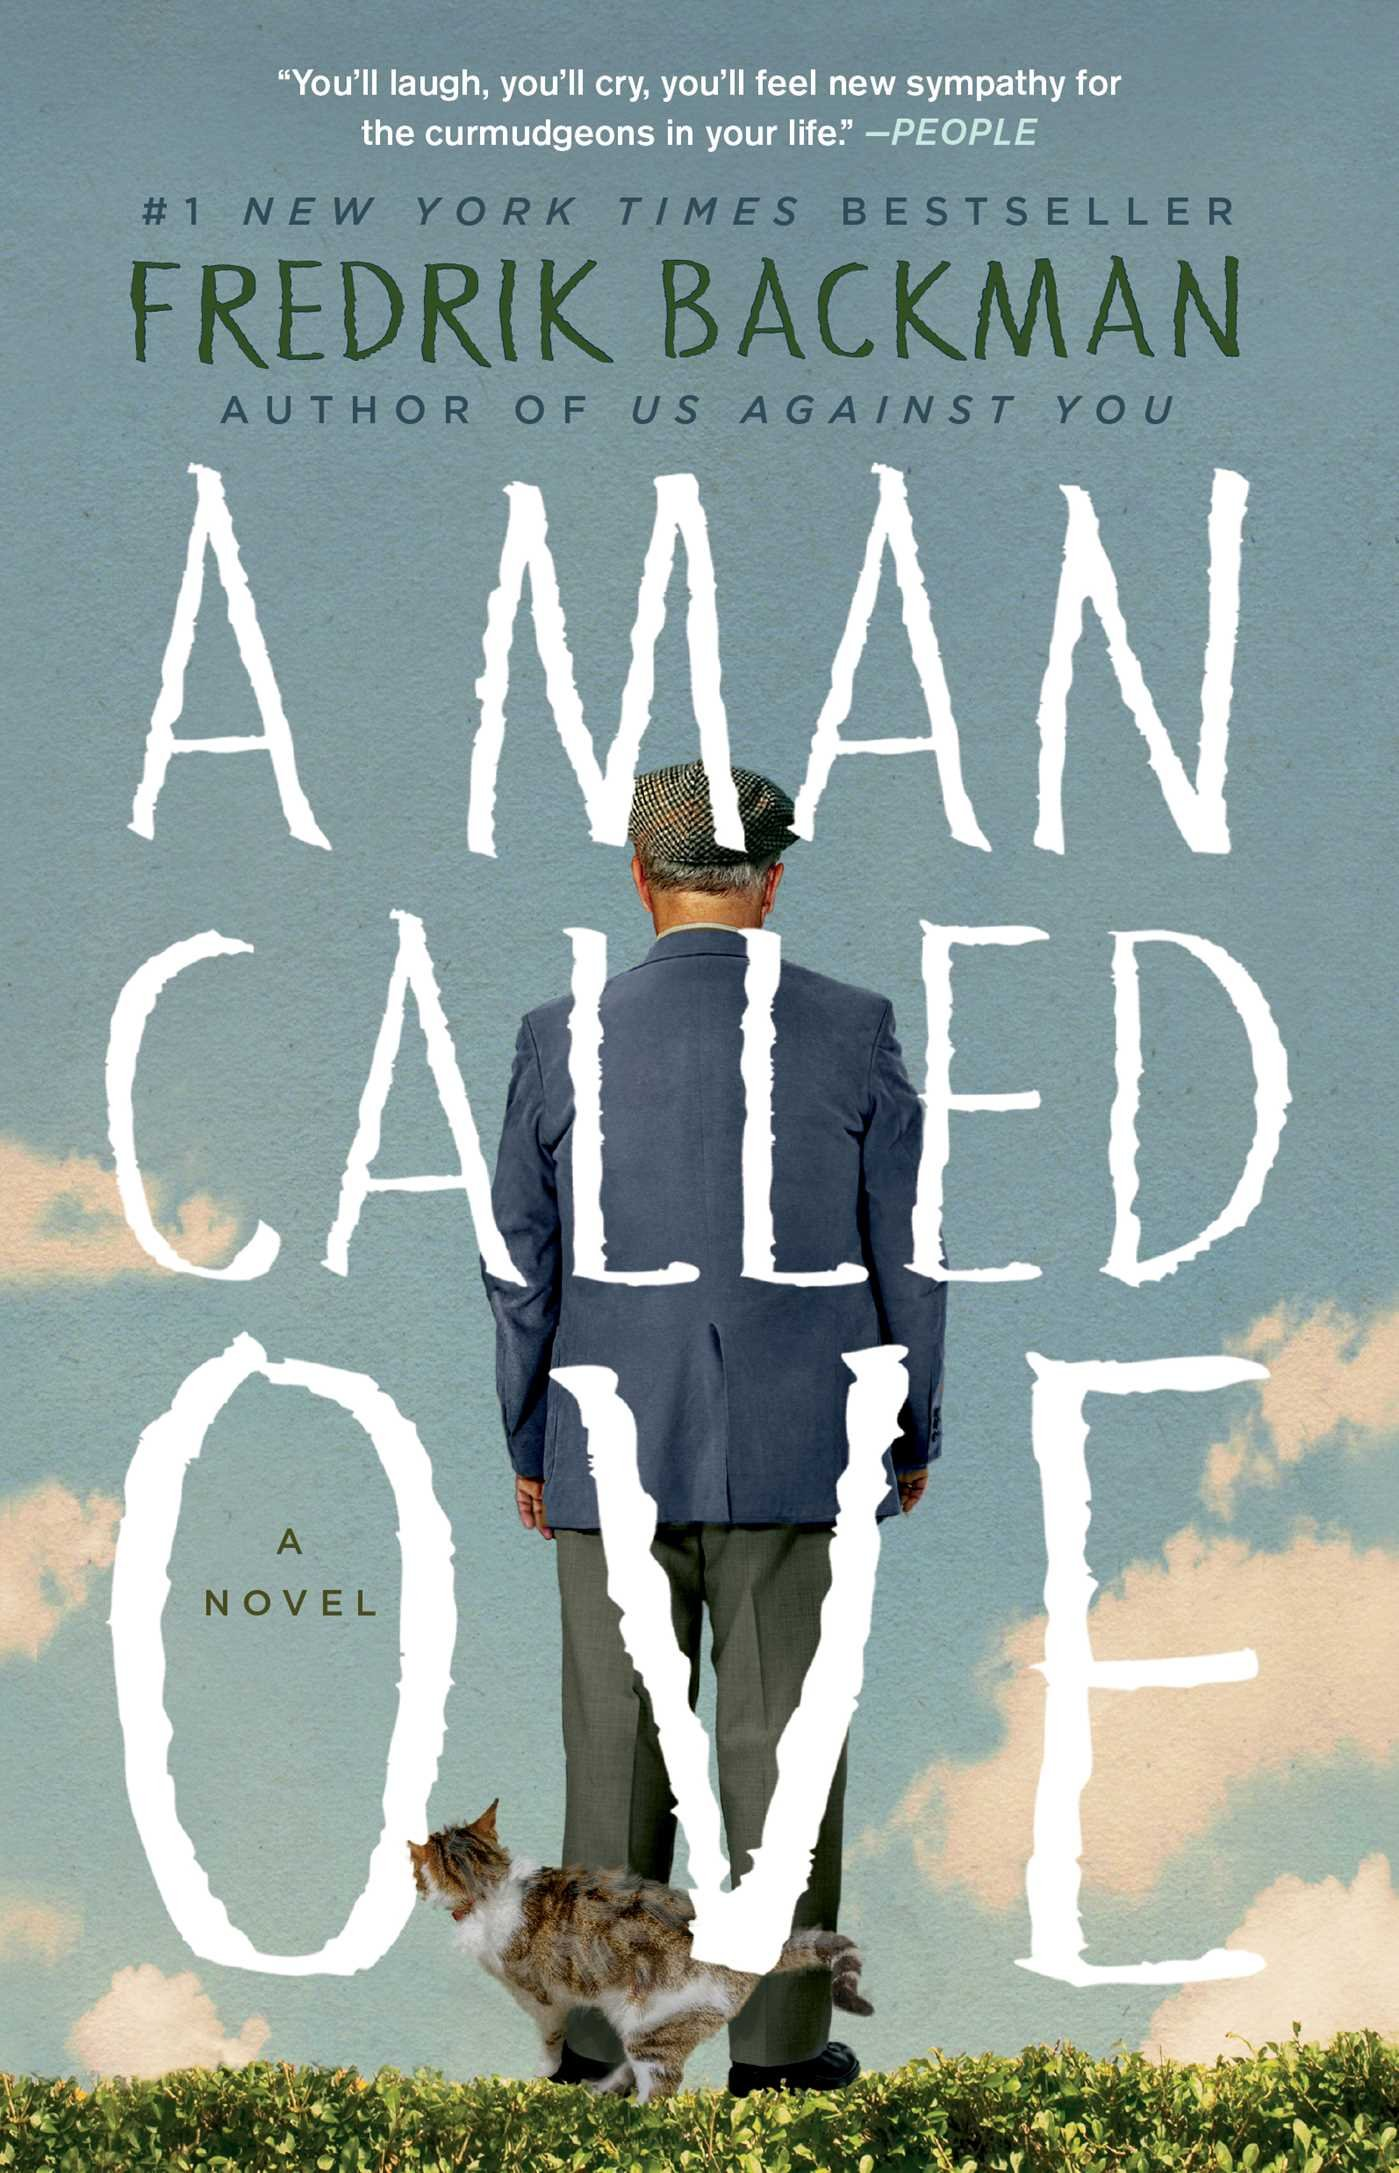 Book Cover of A Man called Ove which has a man standing on a hill with his cat, wearing a blue suit and hat, faced away, looking out at a blue sky and fluffy clouds